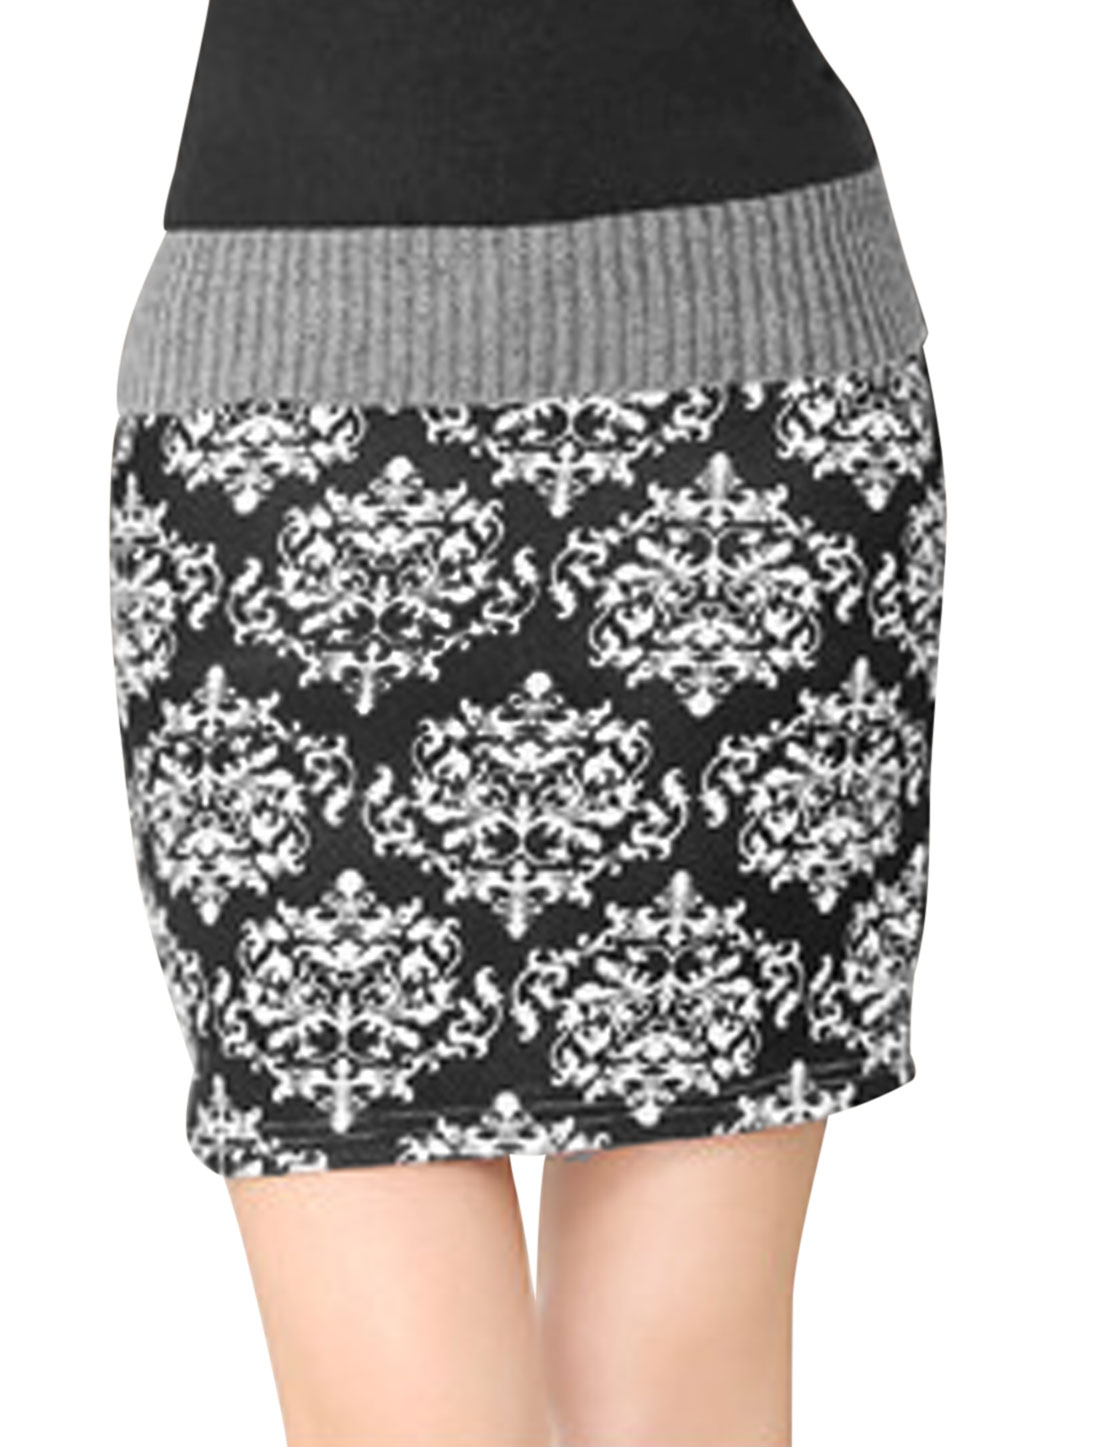 Women High Waist Jacquaid Prints Straight Sexy Skirt Black White XS